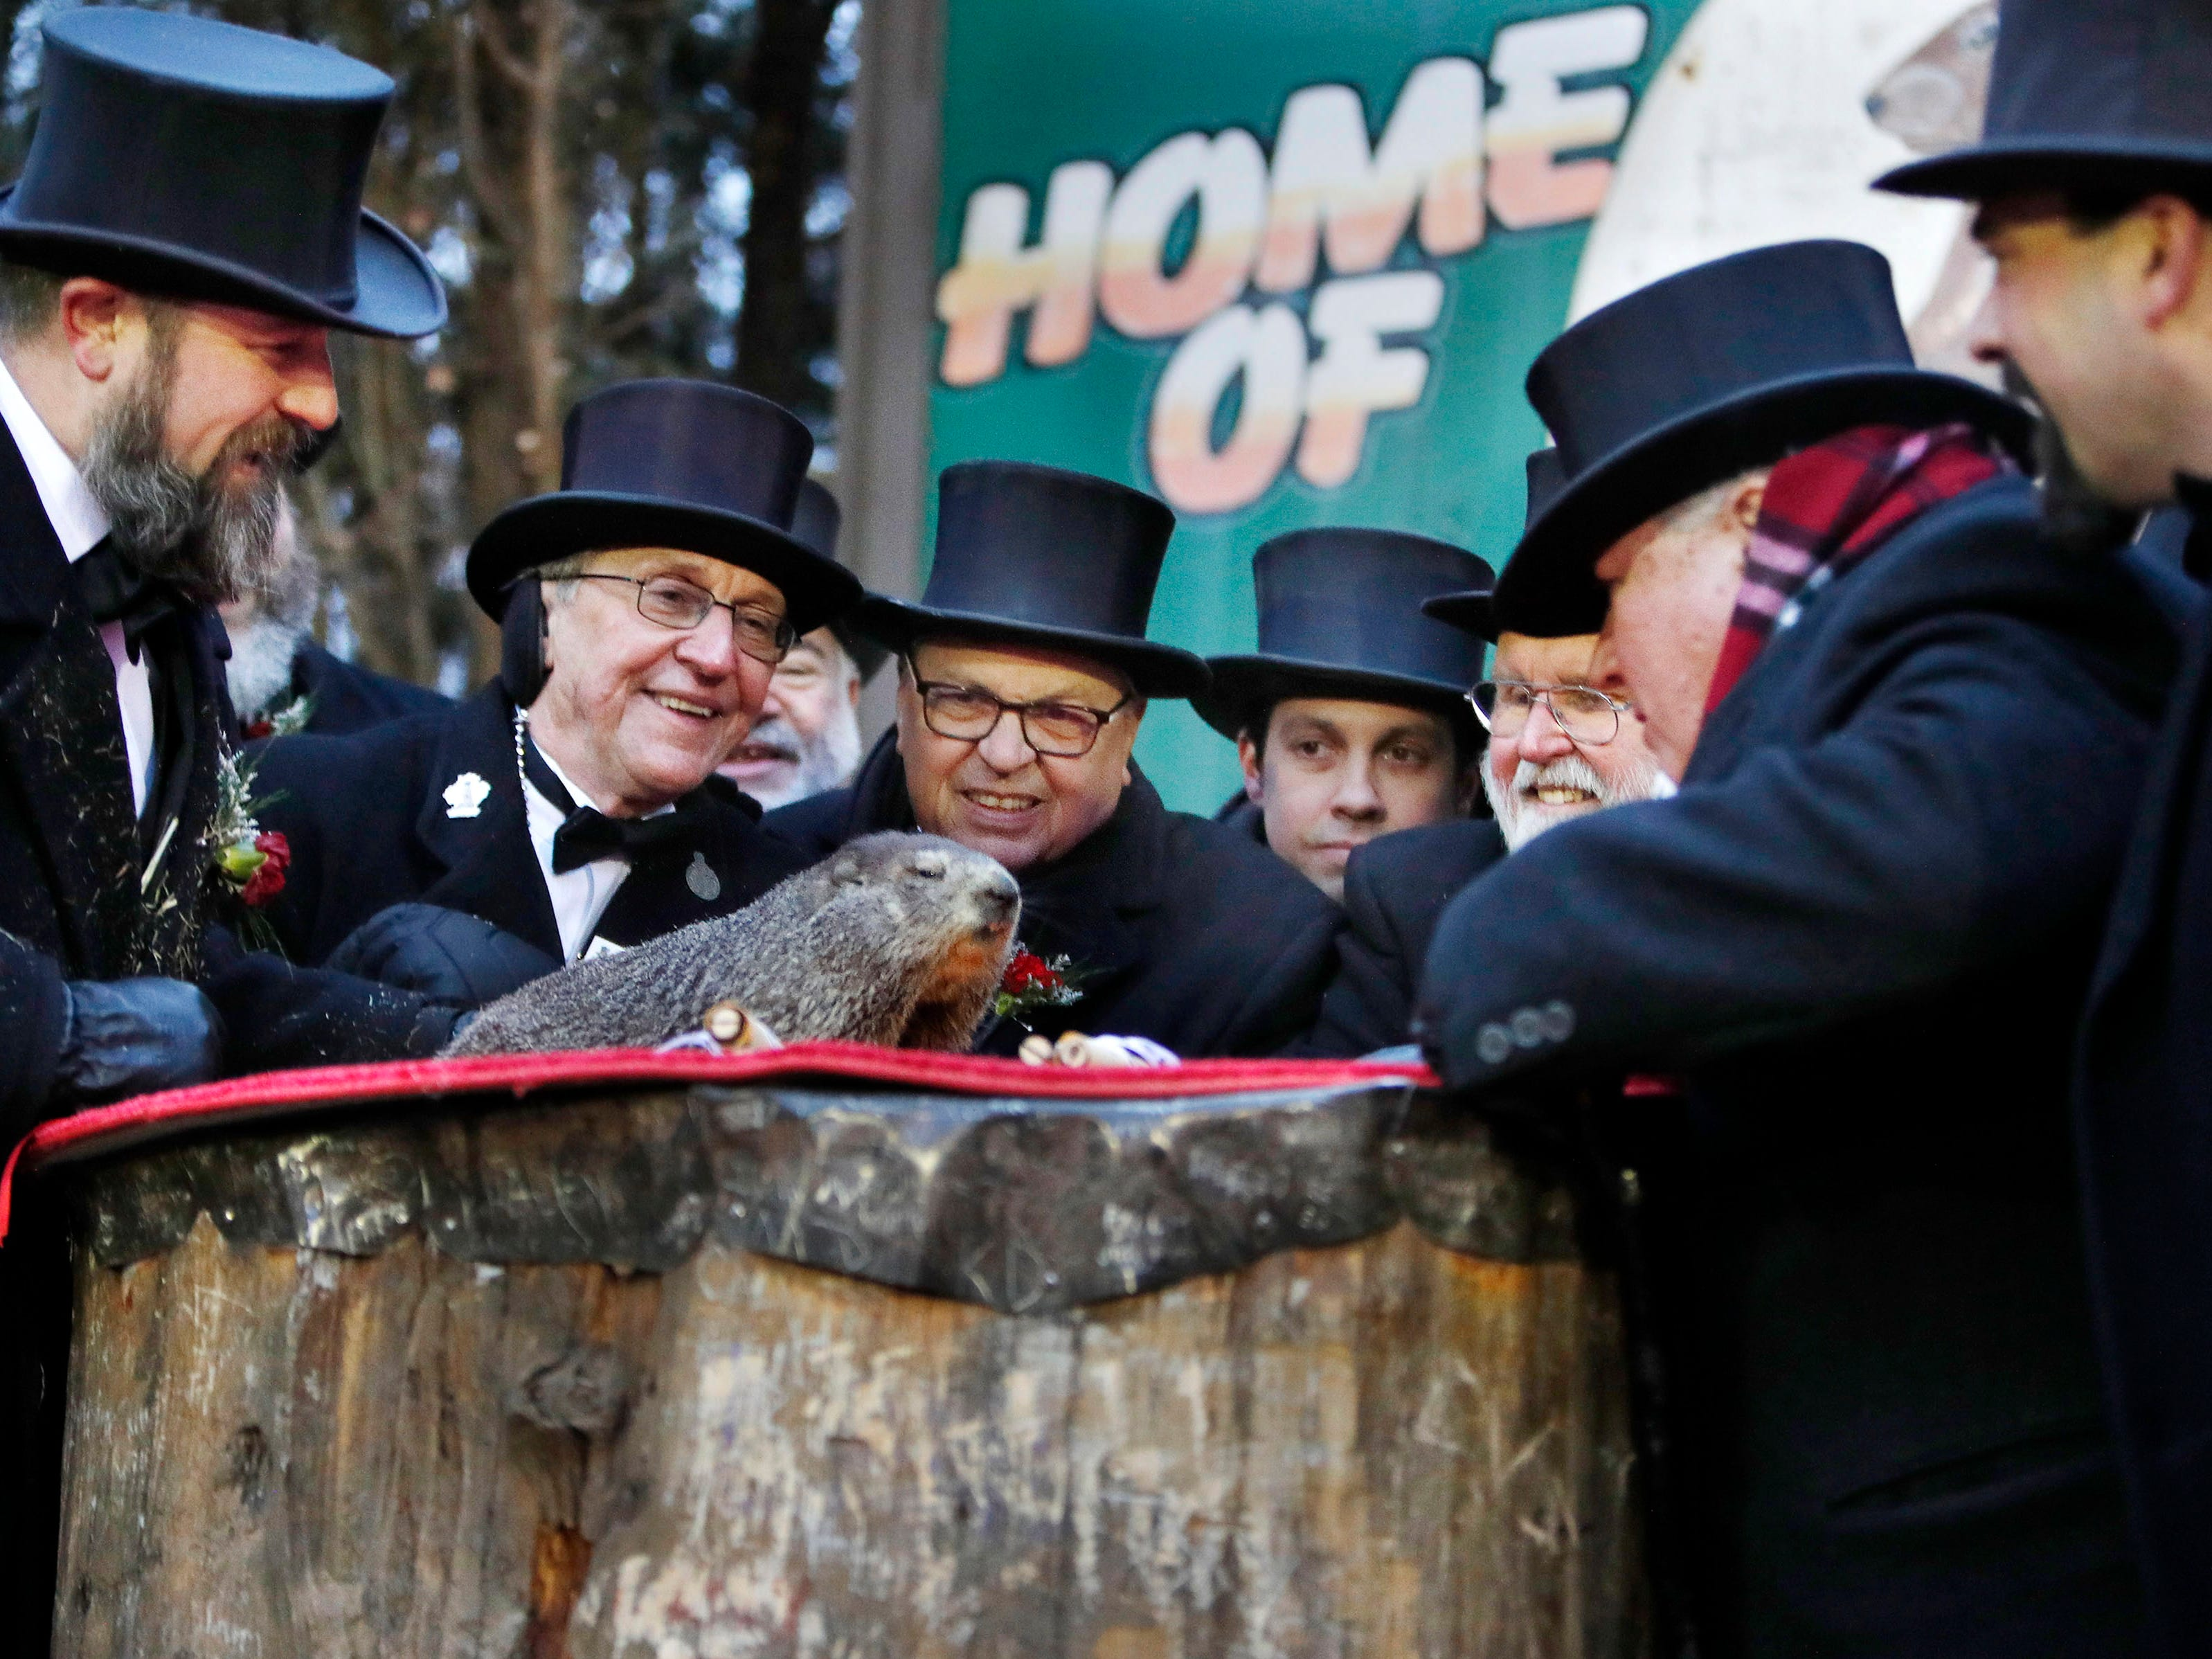 Members of the Groundhog Club Inner Circle look on as Punxsutawney Phil makes his prediction during the Groundhog Day celebration at Gobblers Knob in Punxsutawney, Pa. on Feb. 2 2019.